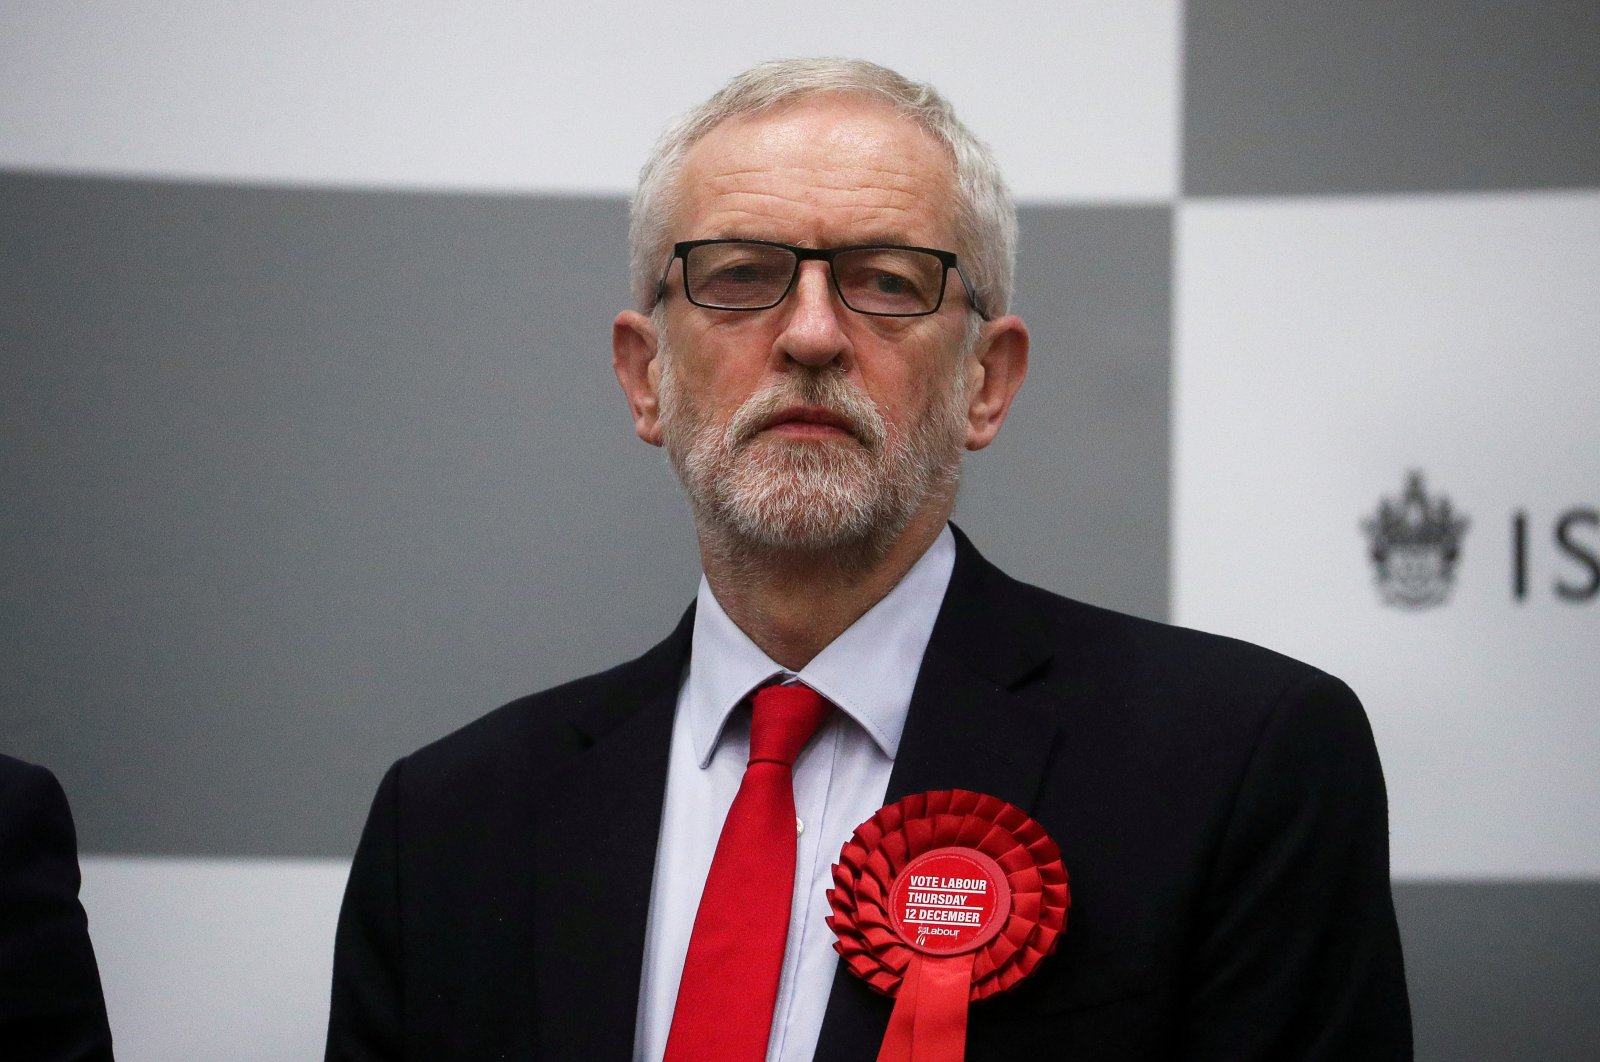 Britain's opposition Labour Party leaderJeremy Corbyn waits for the General Election results of the Islington North constituency, London, Britain, Dec. 13, 2019. (REUTERS Photo)